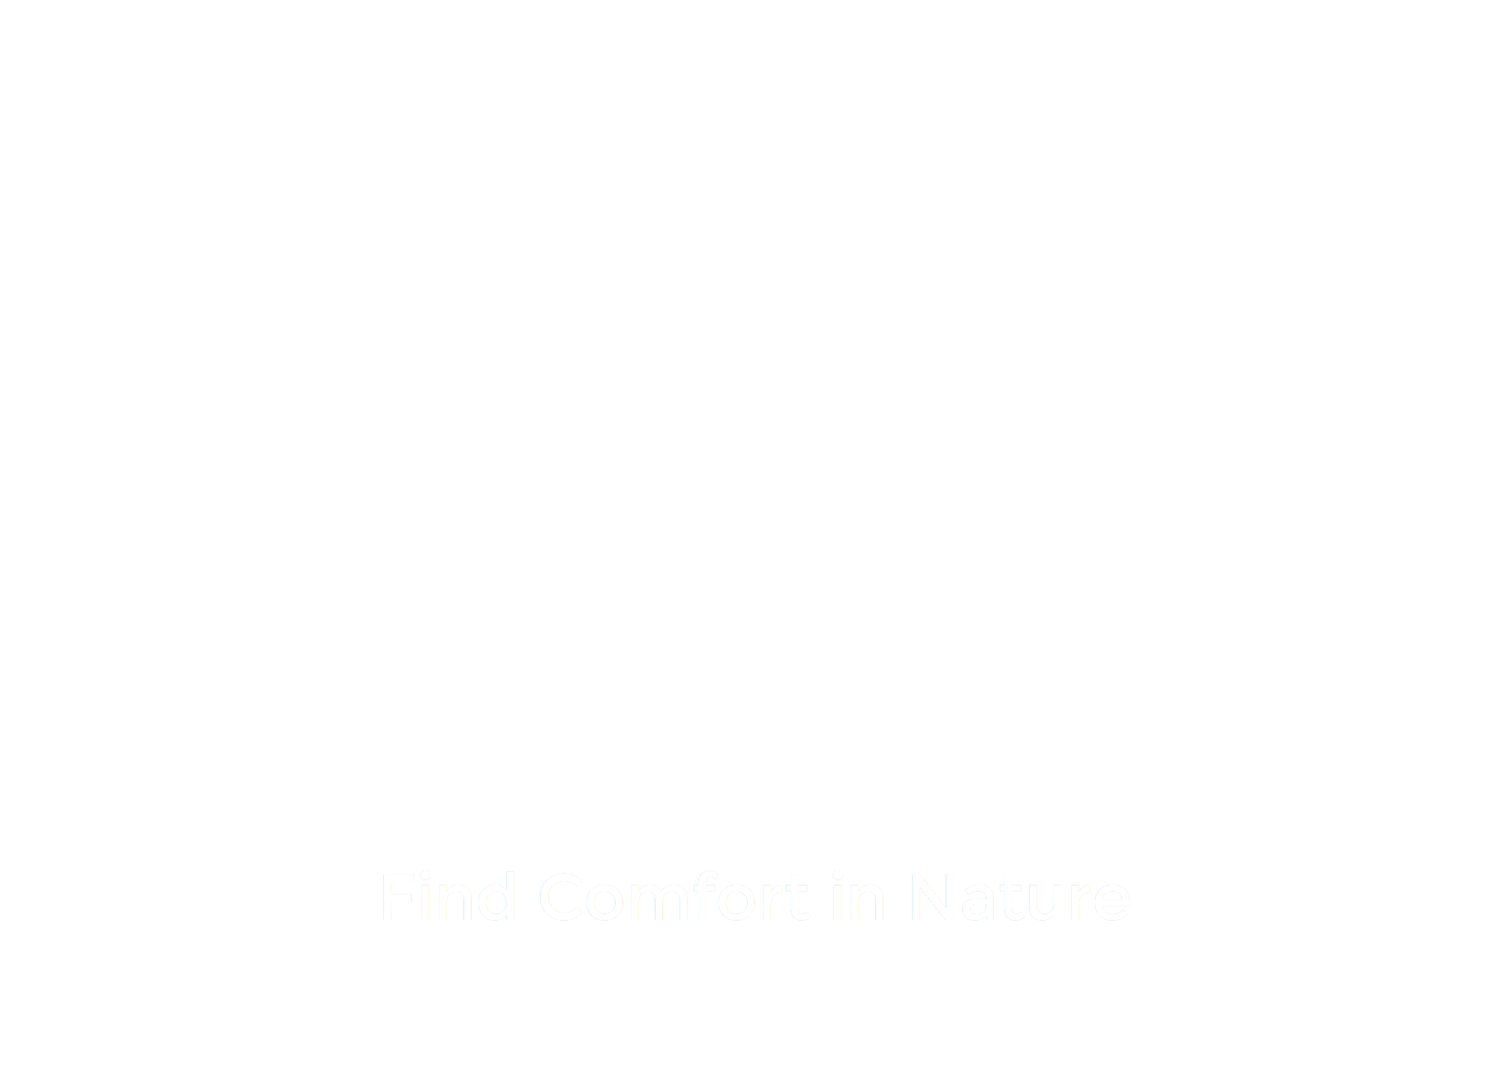 Alpine Leisure Co